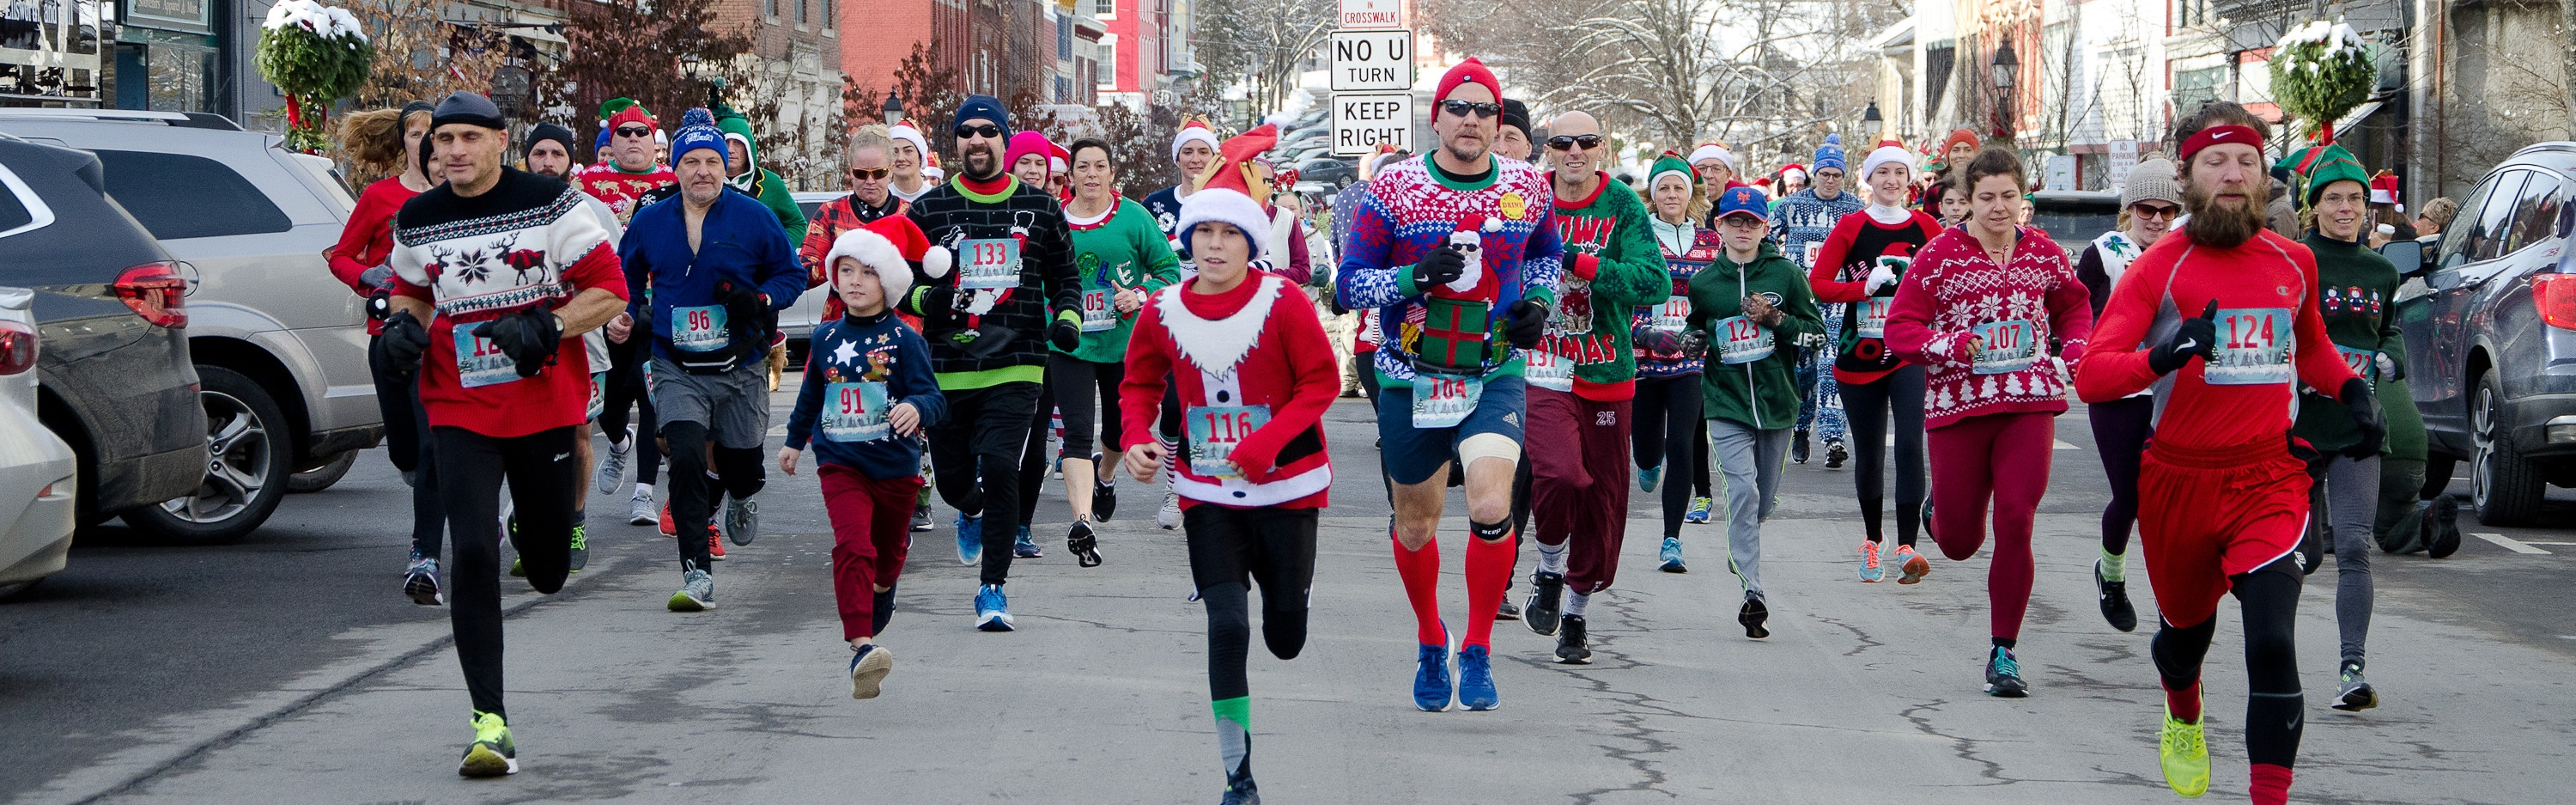 6th Annual Rockin' Around Cooperstown Ugly Sweater Run/Walk • Saturday, December 14